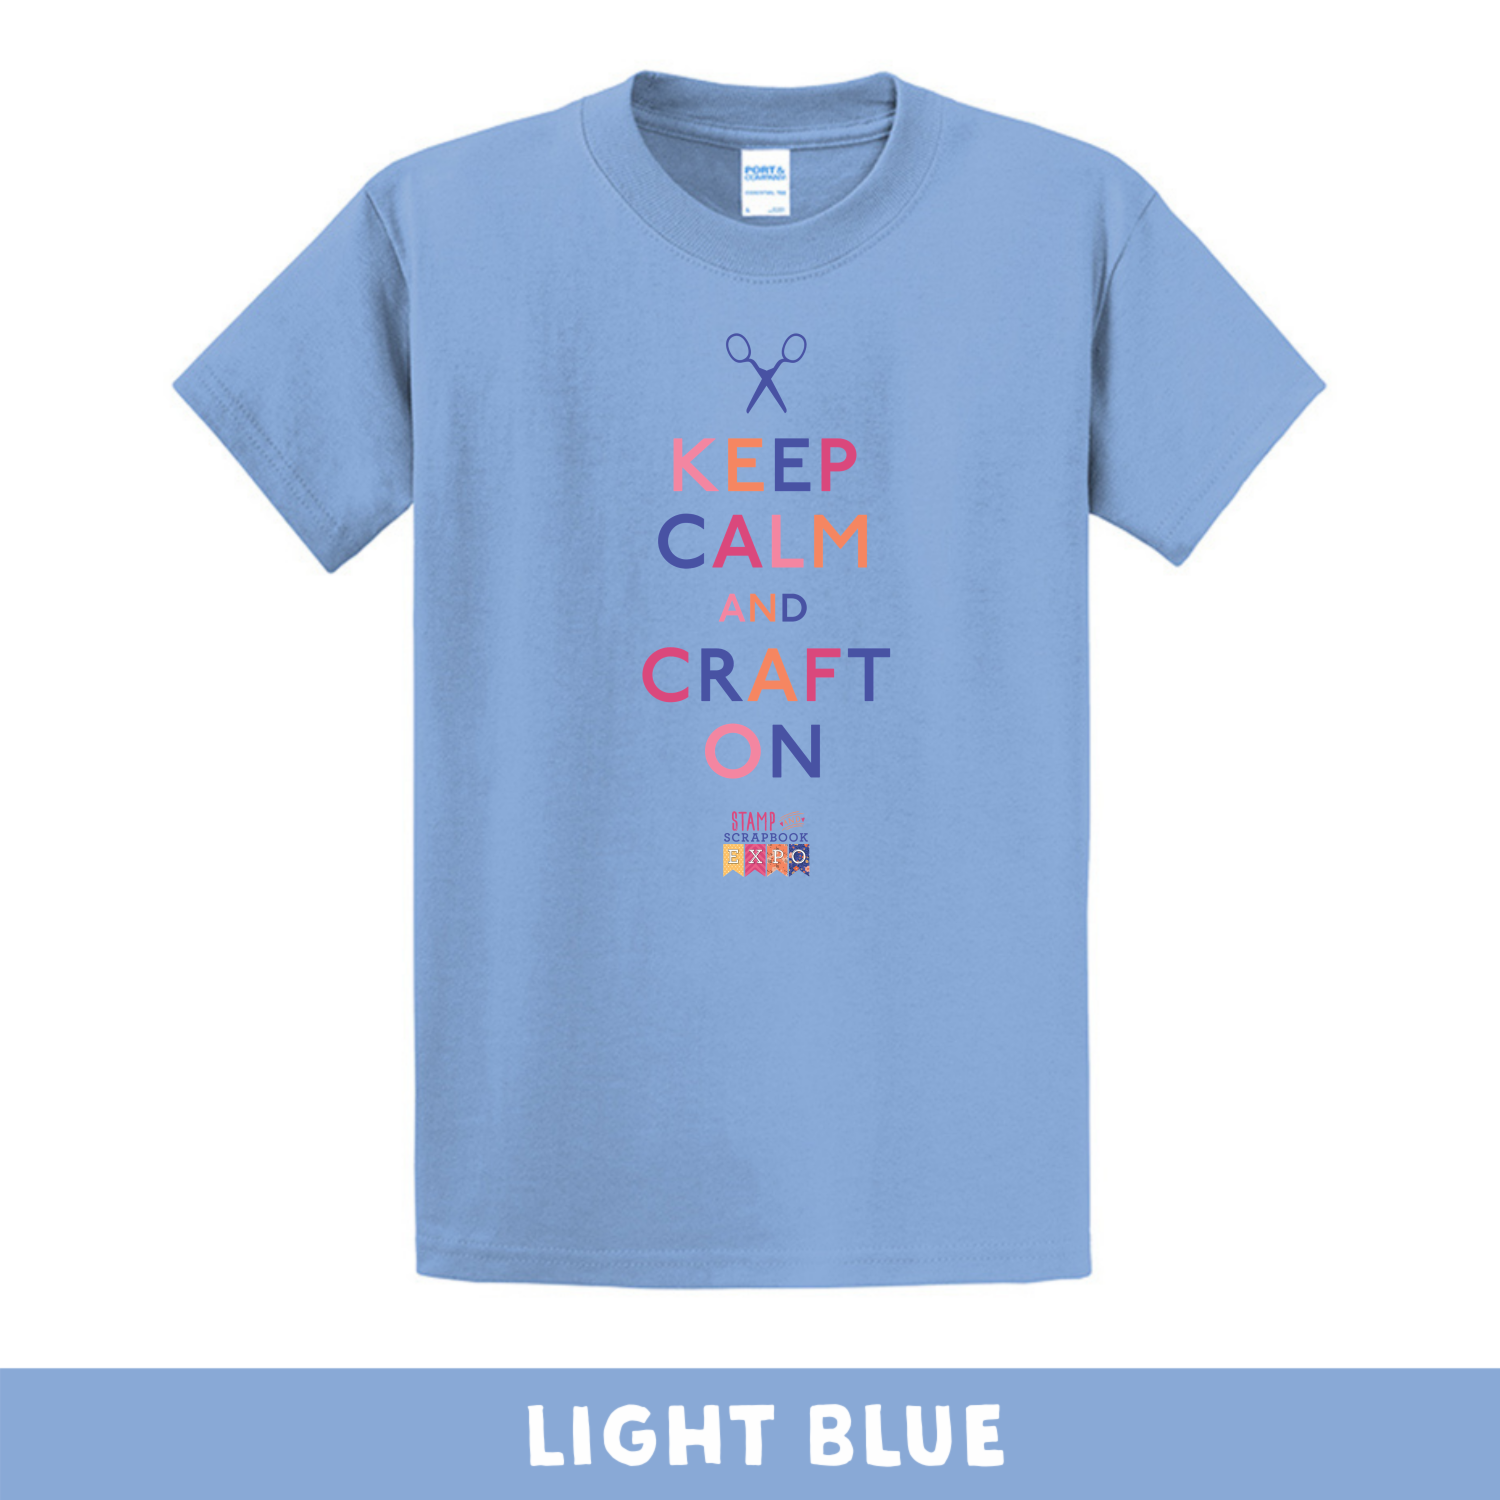 Light Blue - Crew Neck Unisex T-Shirt - Keep Calm & Craft On